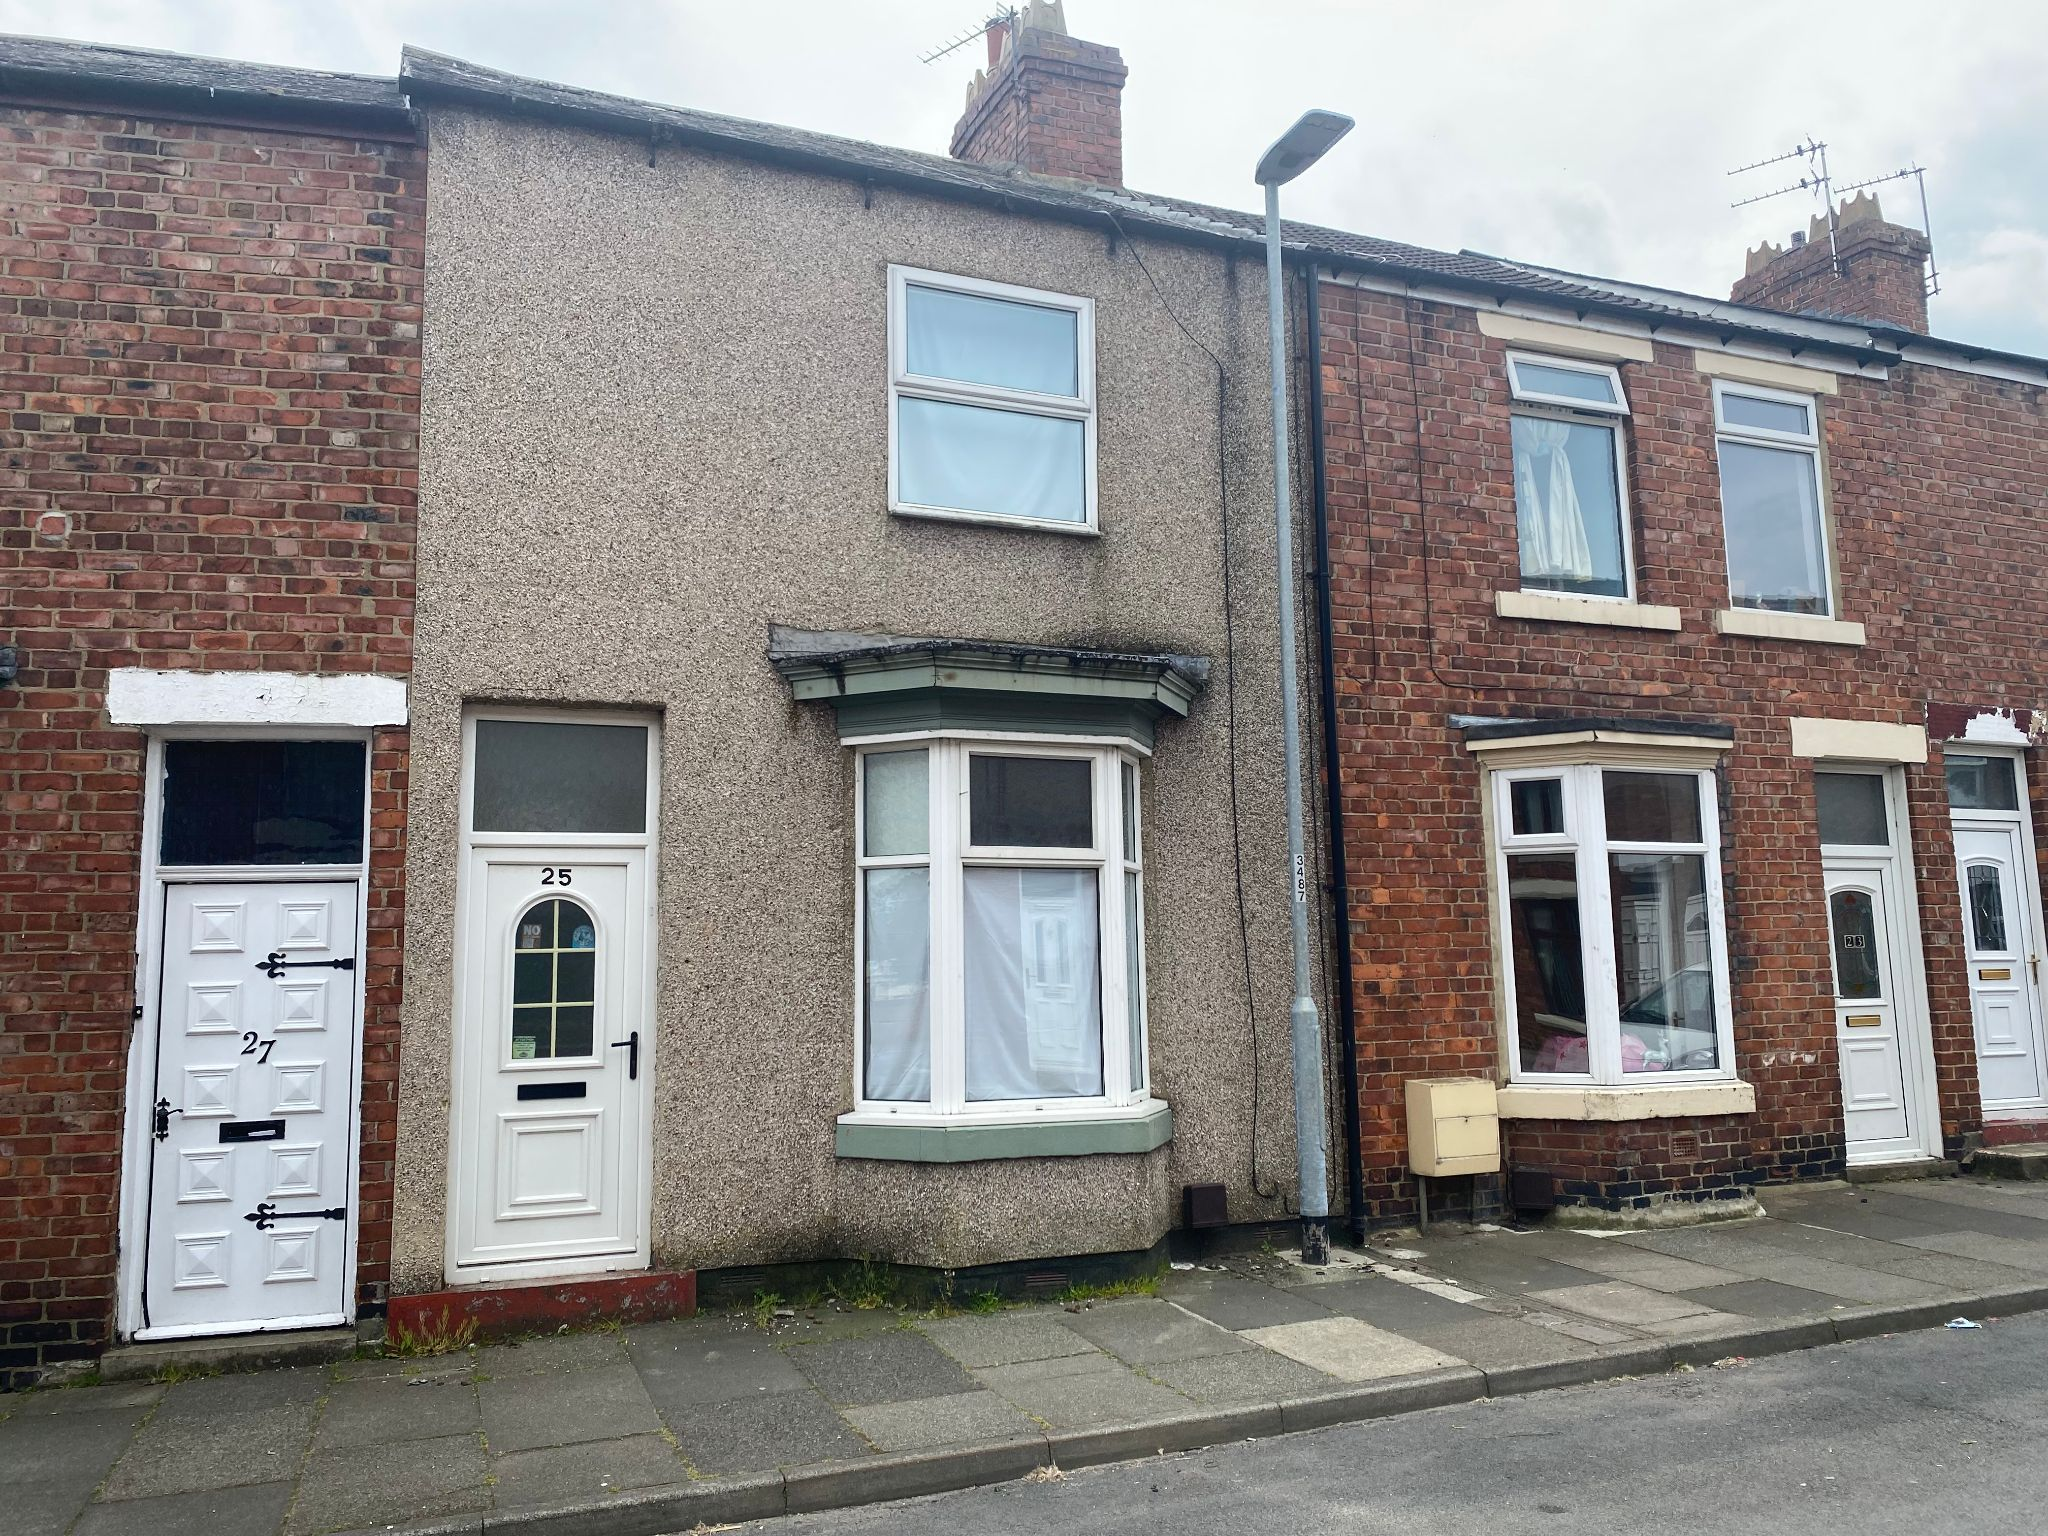 2 bedroom mid terraced house For Sale in Shildon - Photograph 1.